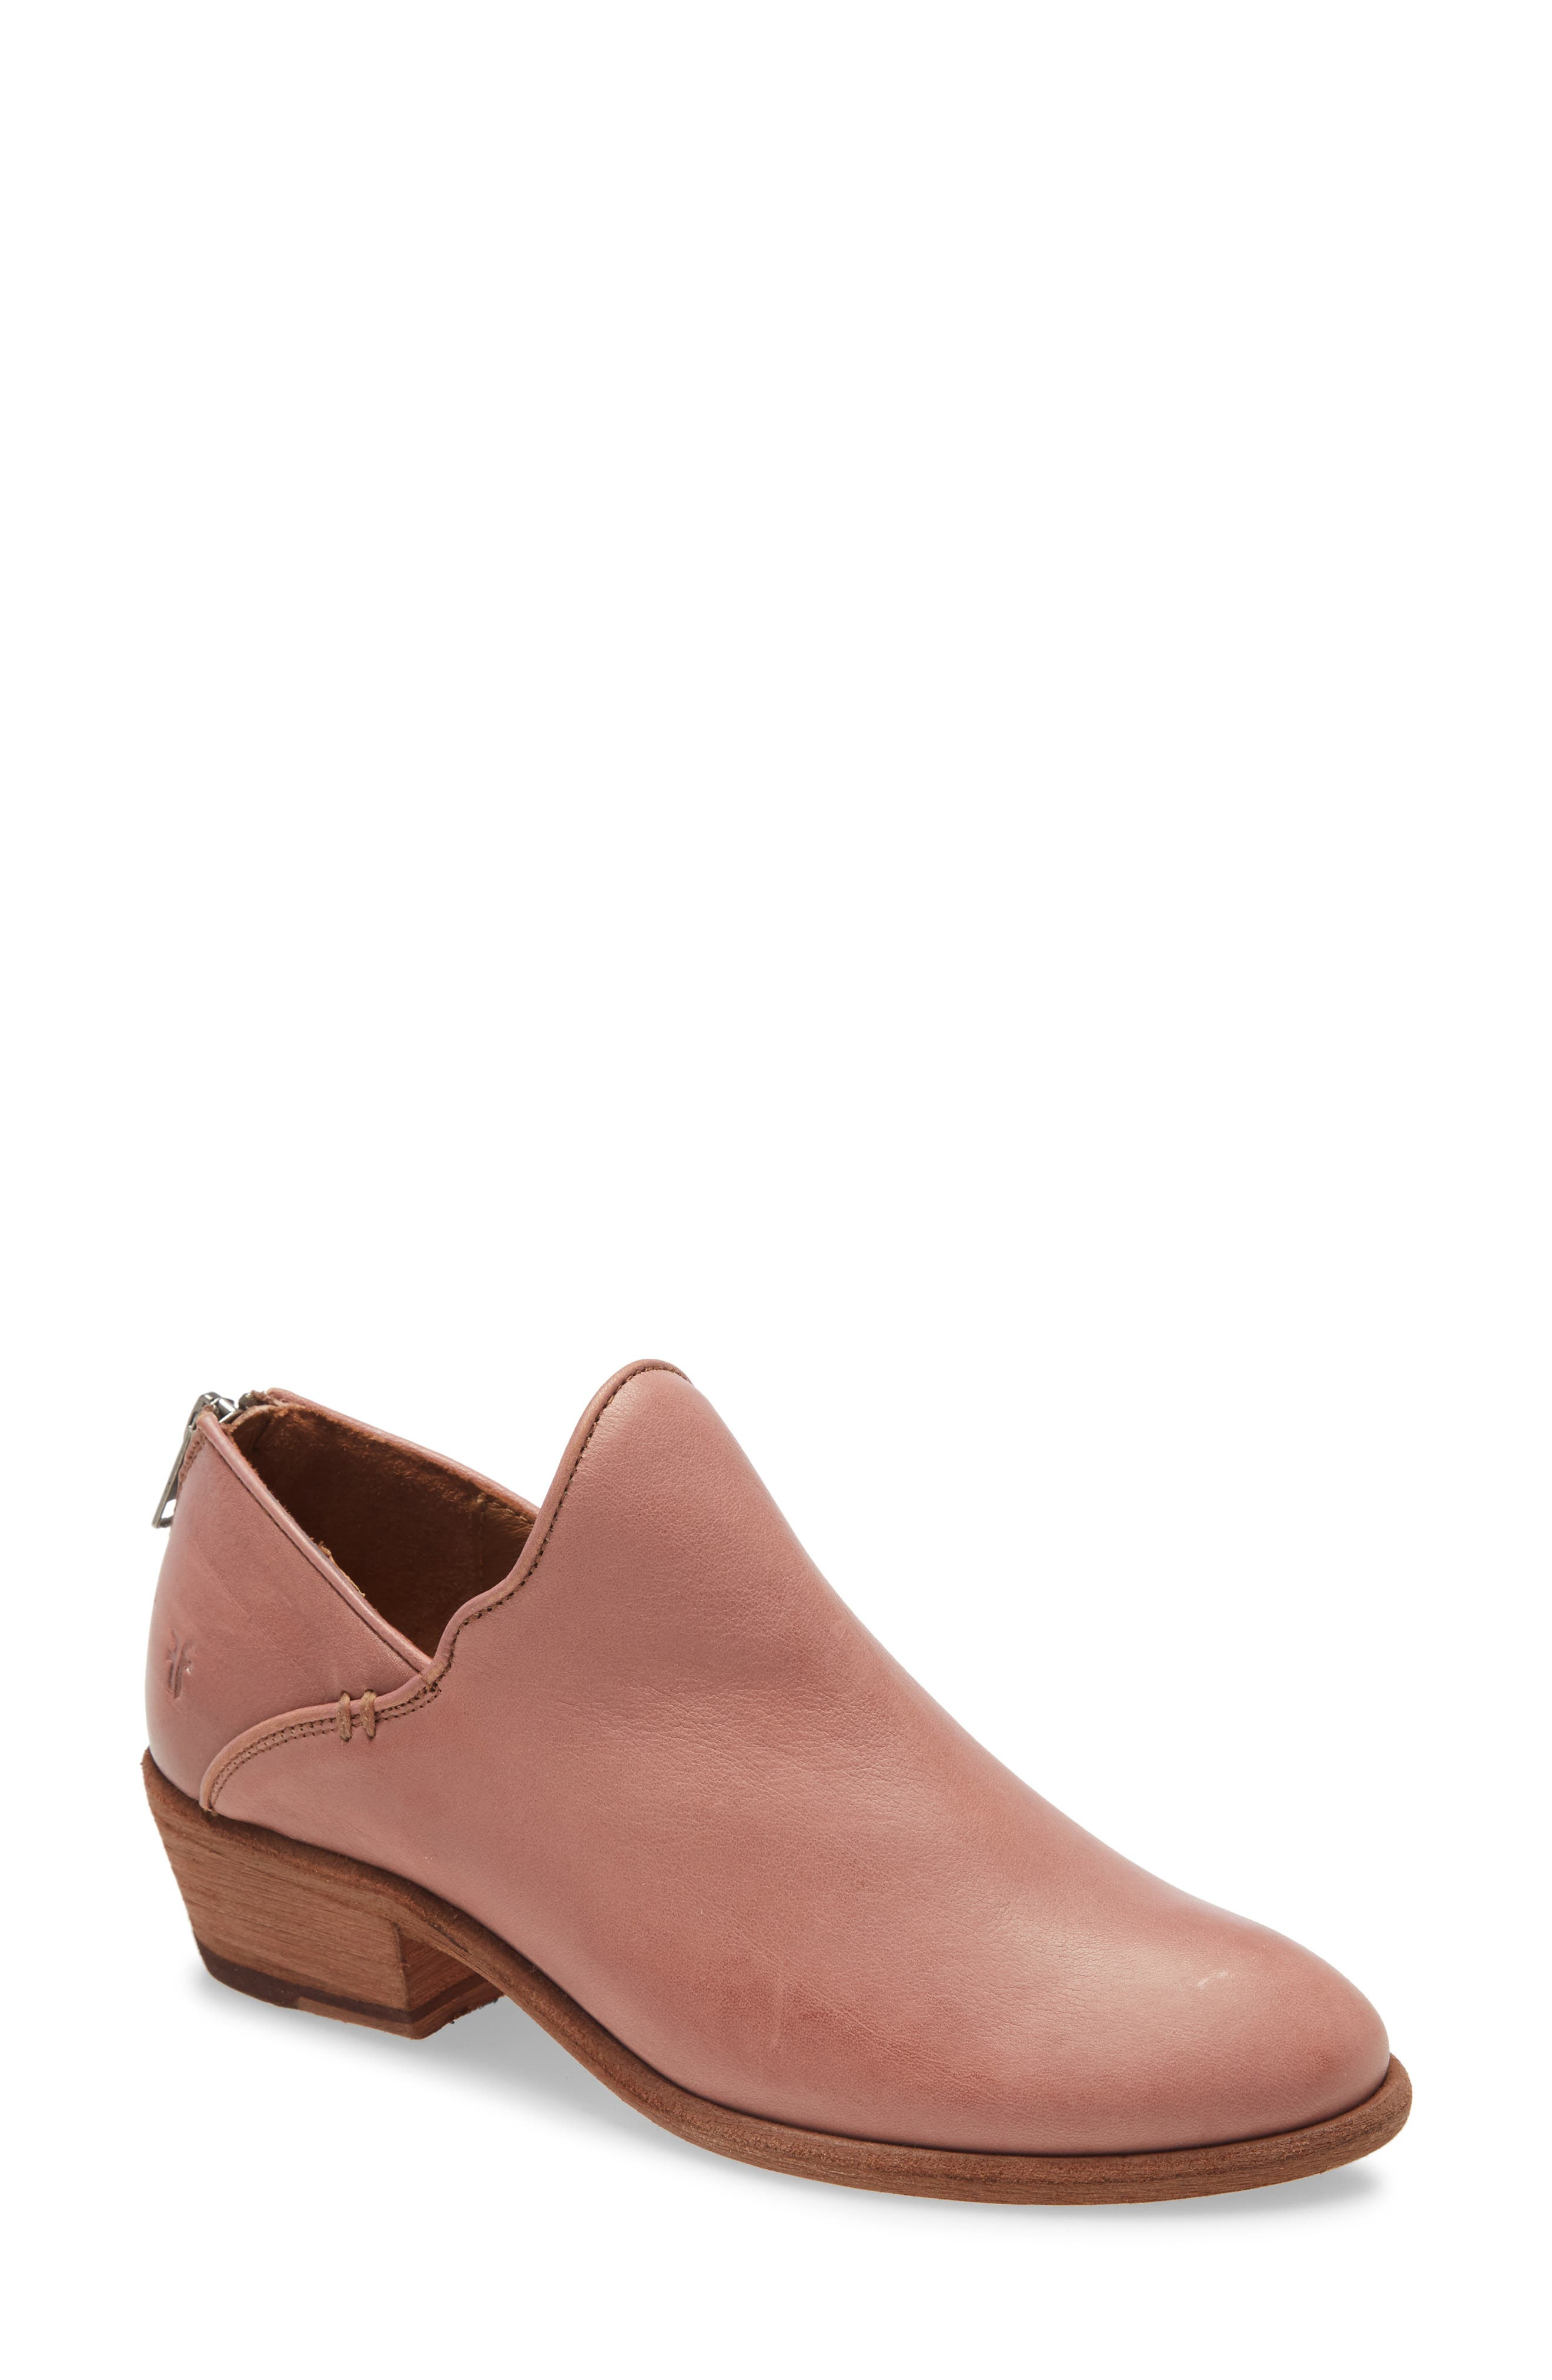 Image of Frye Carson Bootie